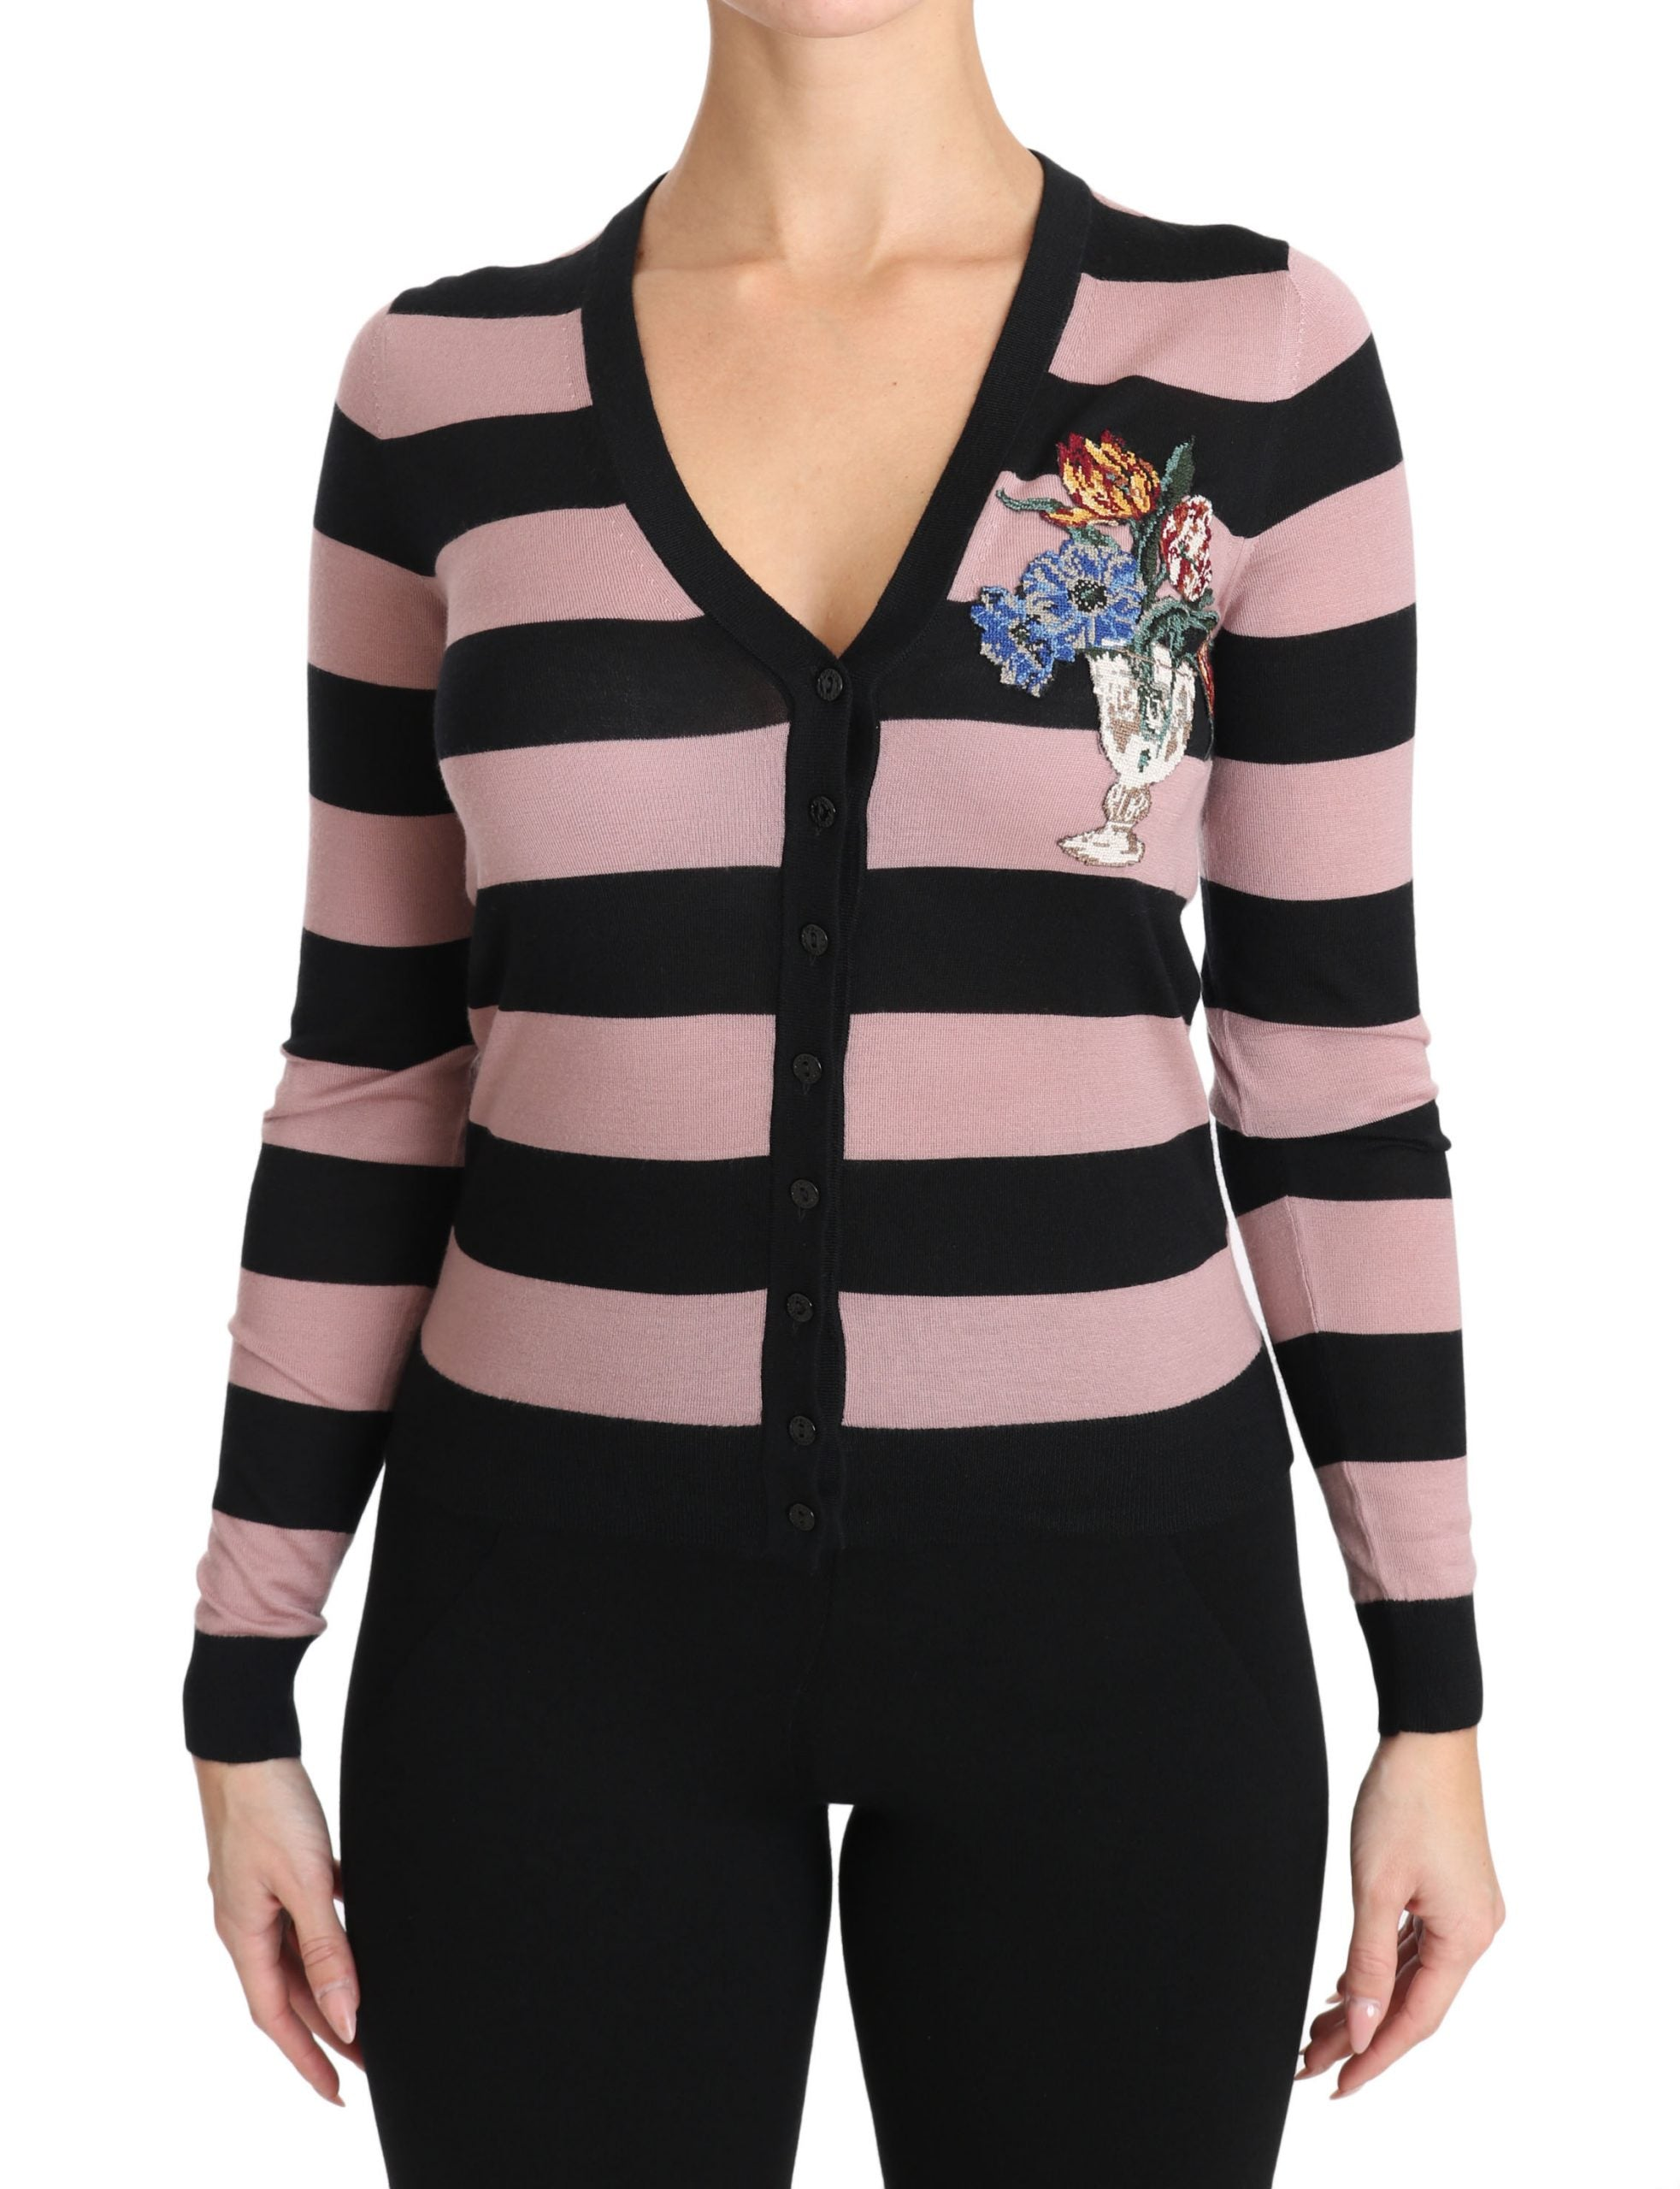 Image of Dolce & Gabbana Pink Floral Cashmere Cardigan Sweater